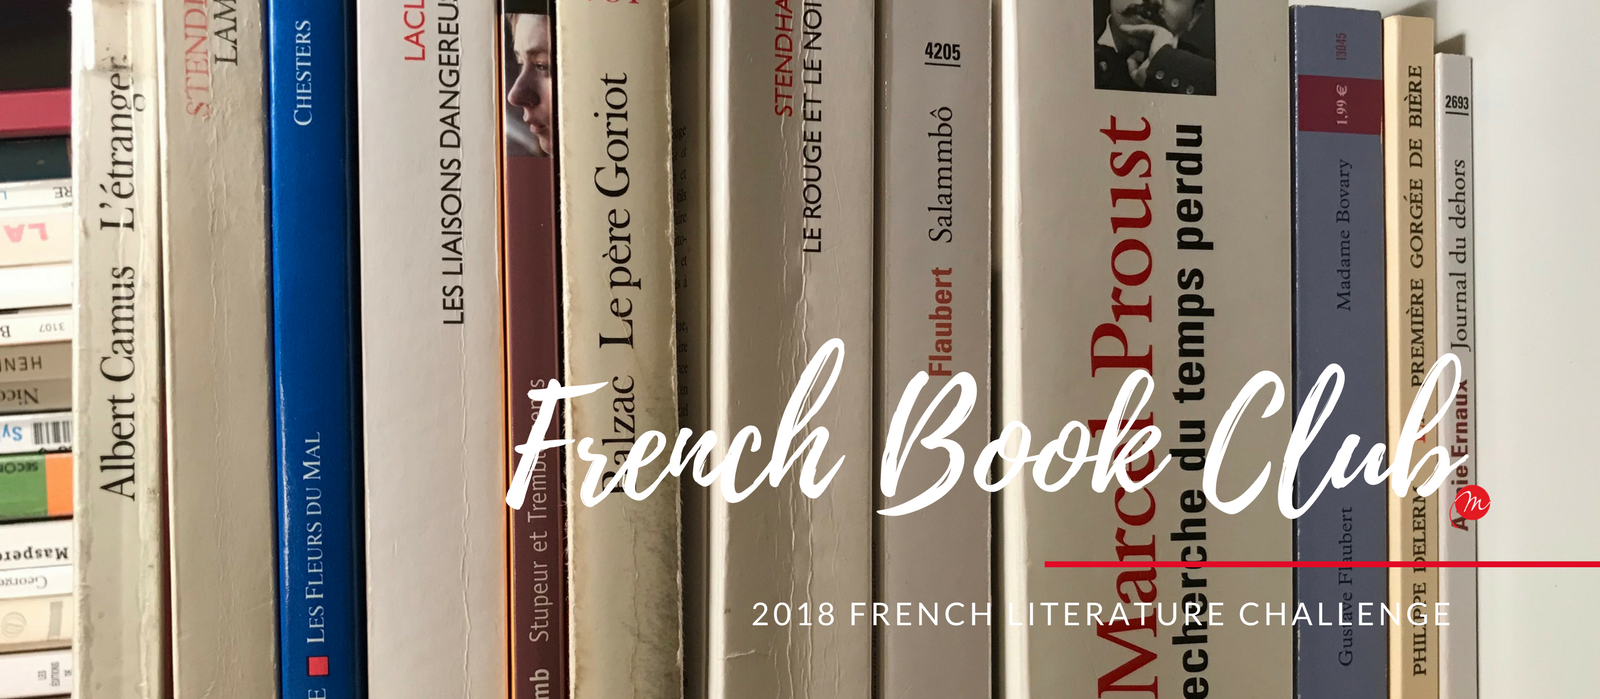 MyFrenchLife™ – MyFrenchLife.org – MyFrenchLife™ French Book Club: Les Liaisons Dangereuses, Laclos – October 2018